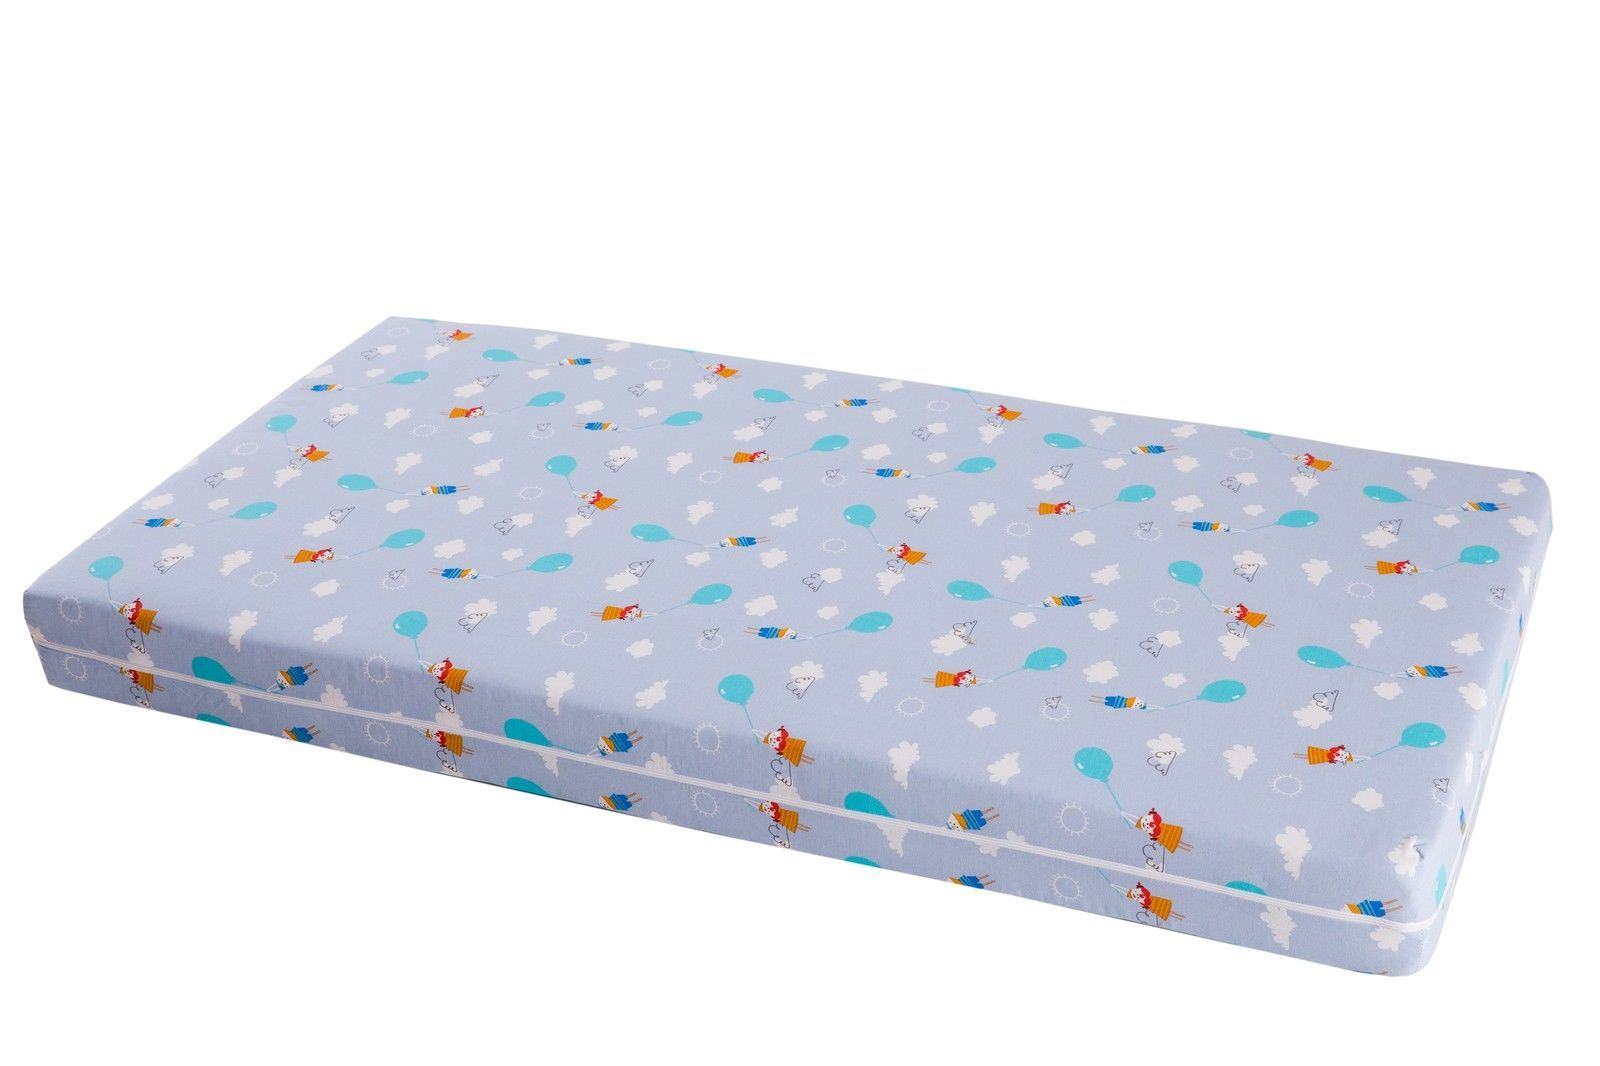 Standard Cot Mattress Size Sunbury Cot Mattress Standard Size Available In 2